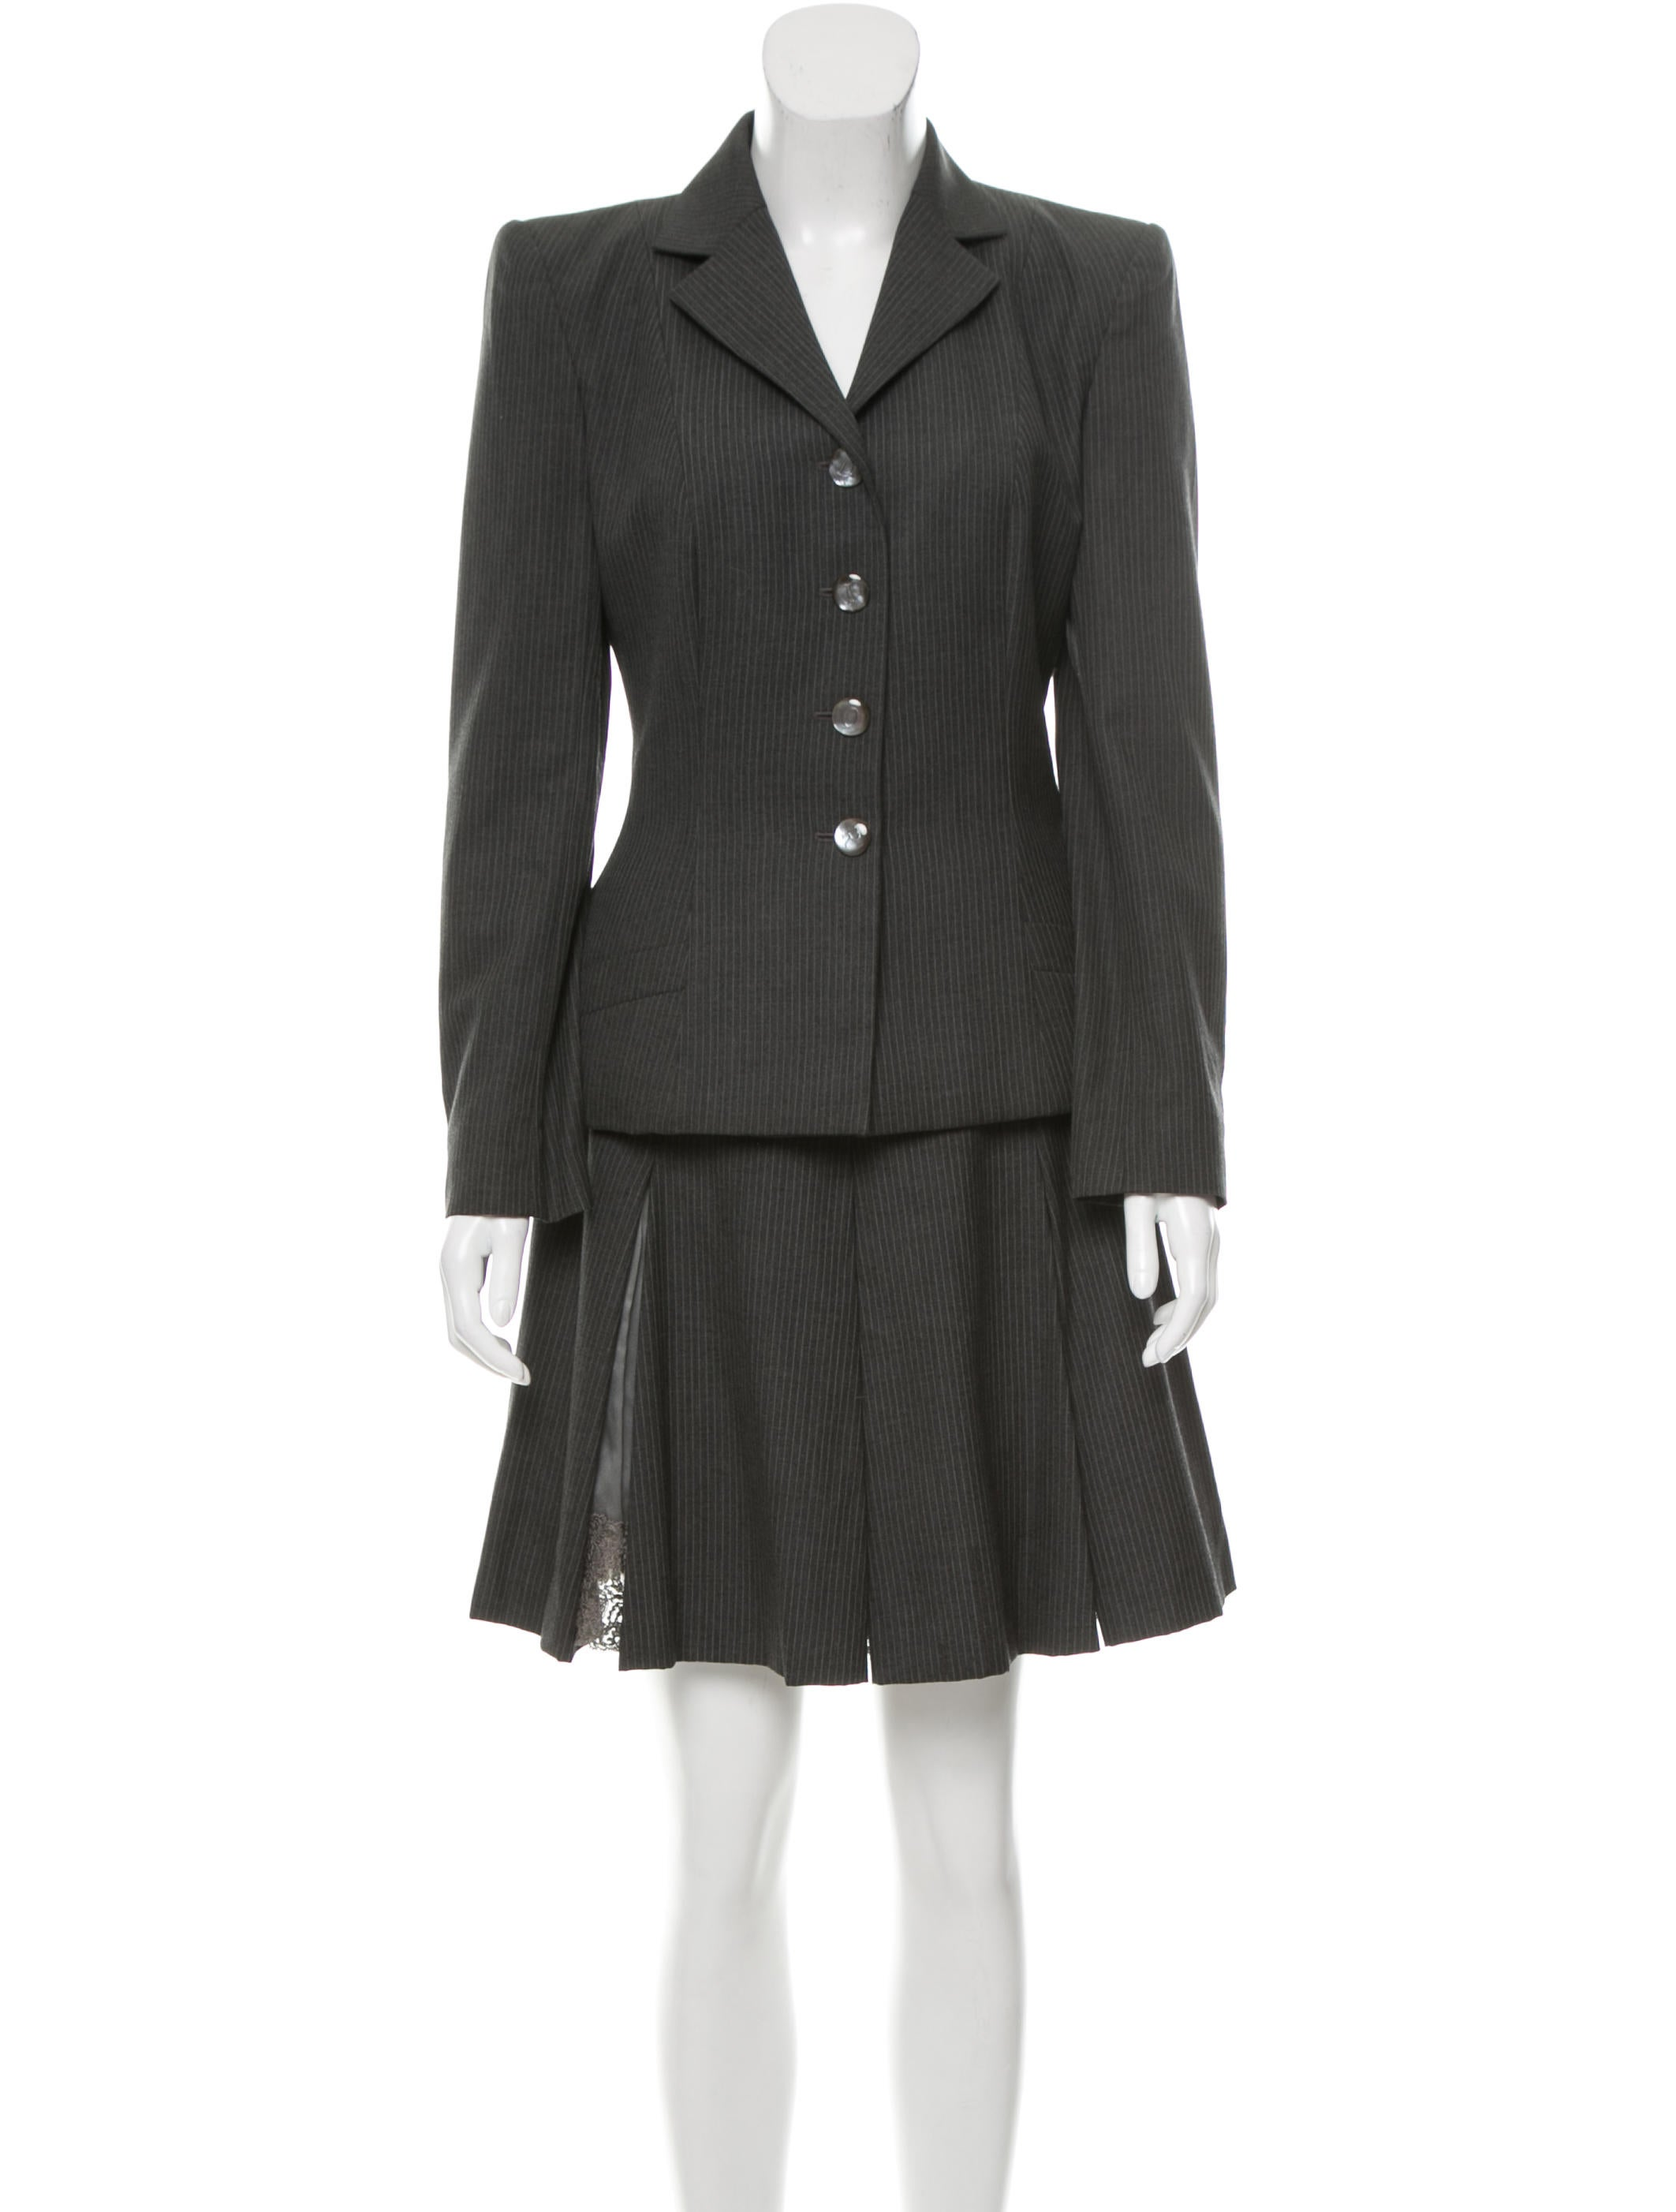 Christian Dior Wool Skirt Suit - Clothing